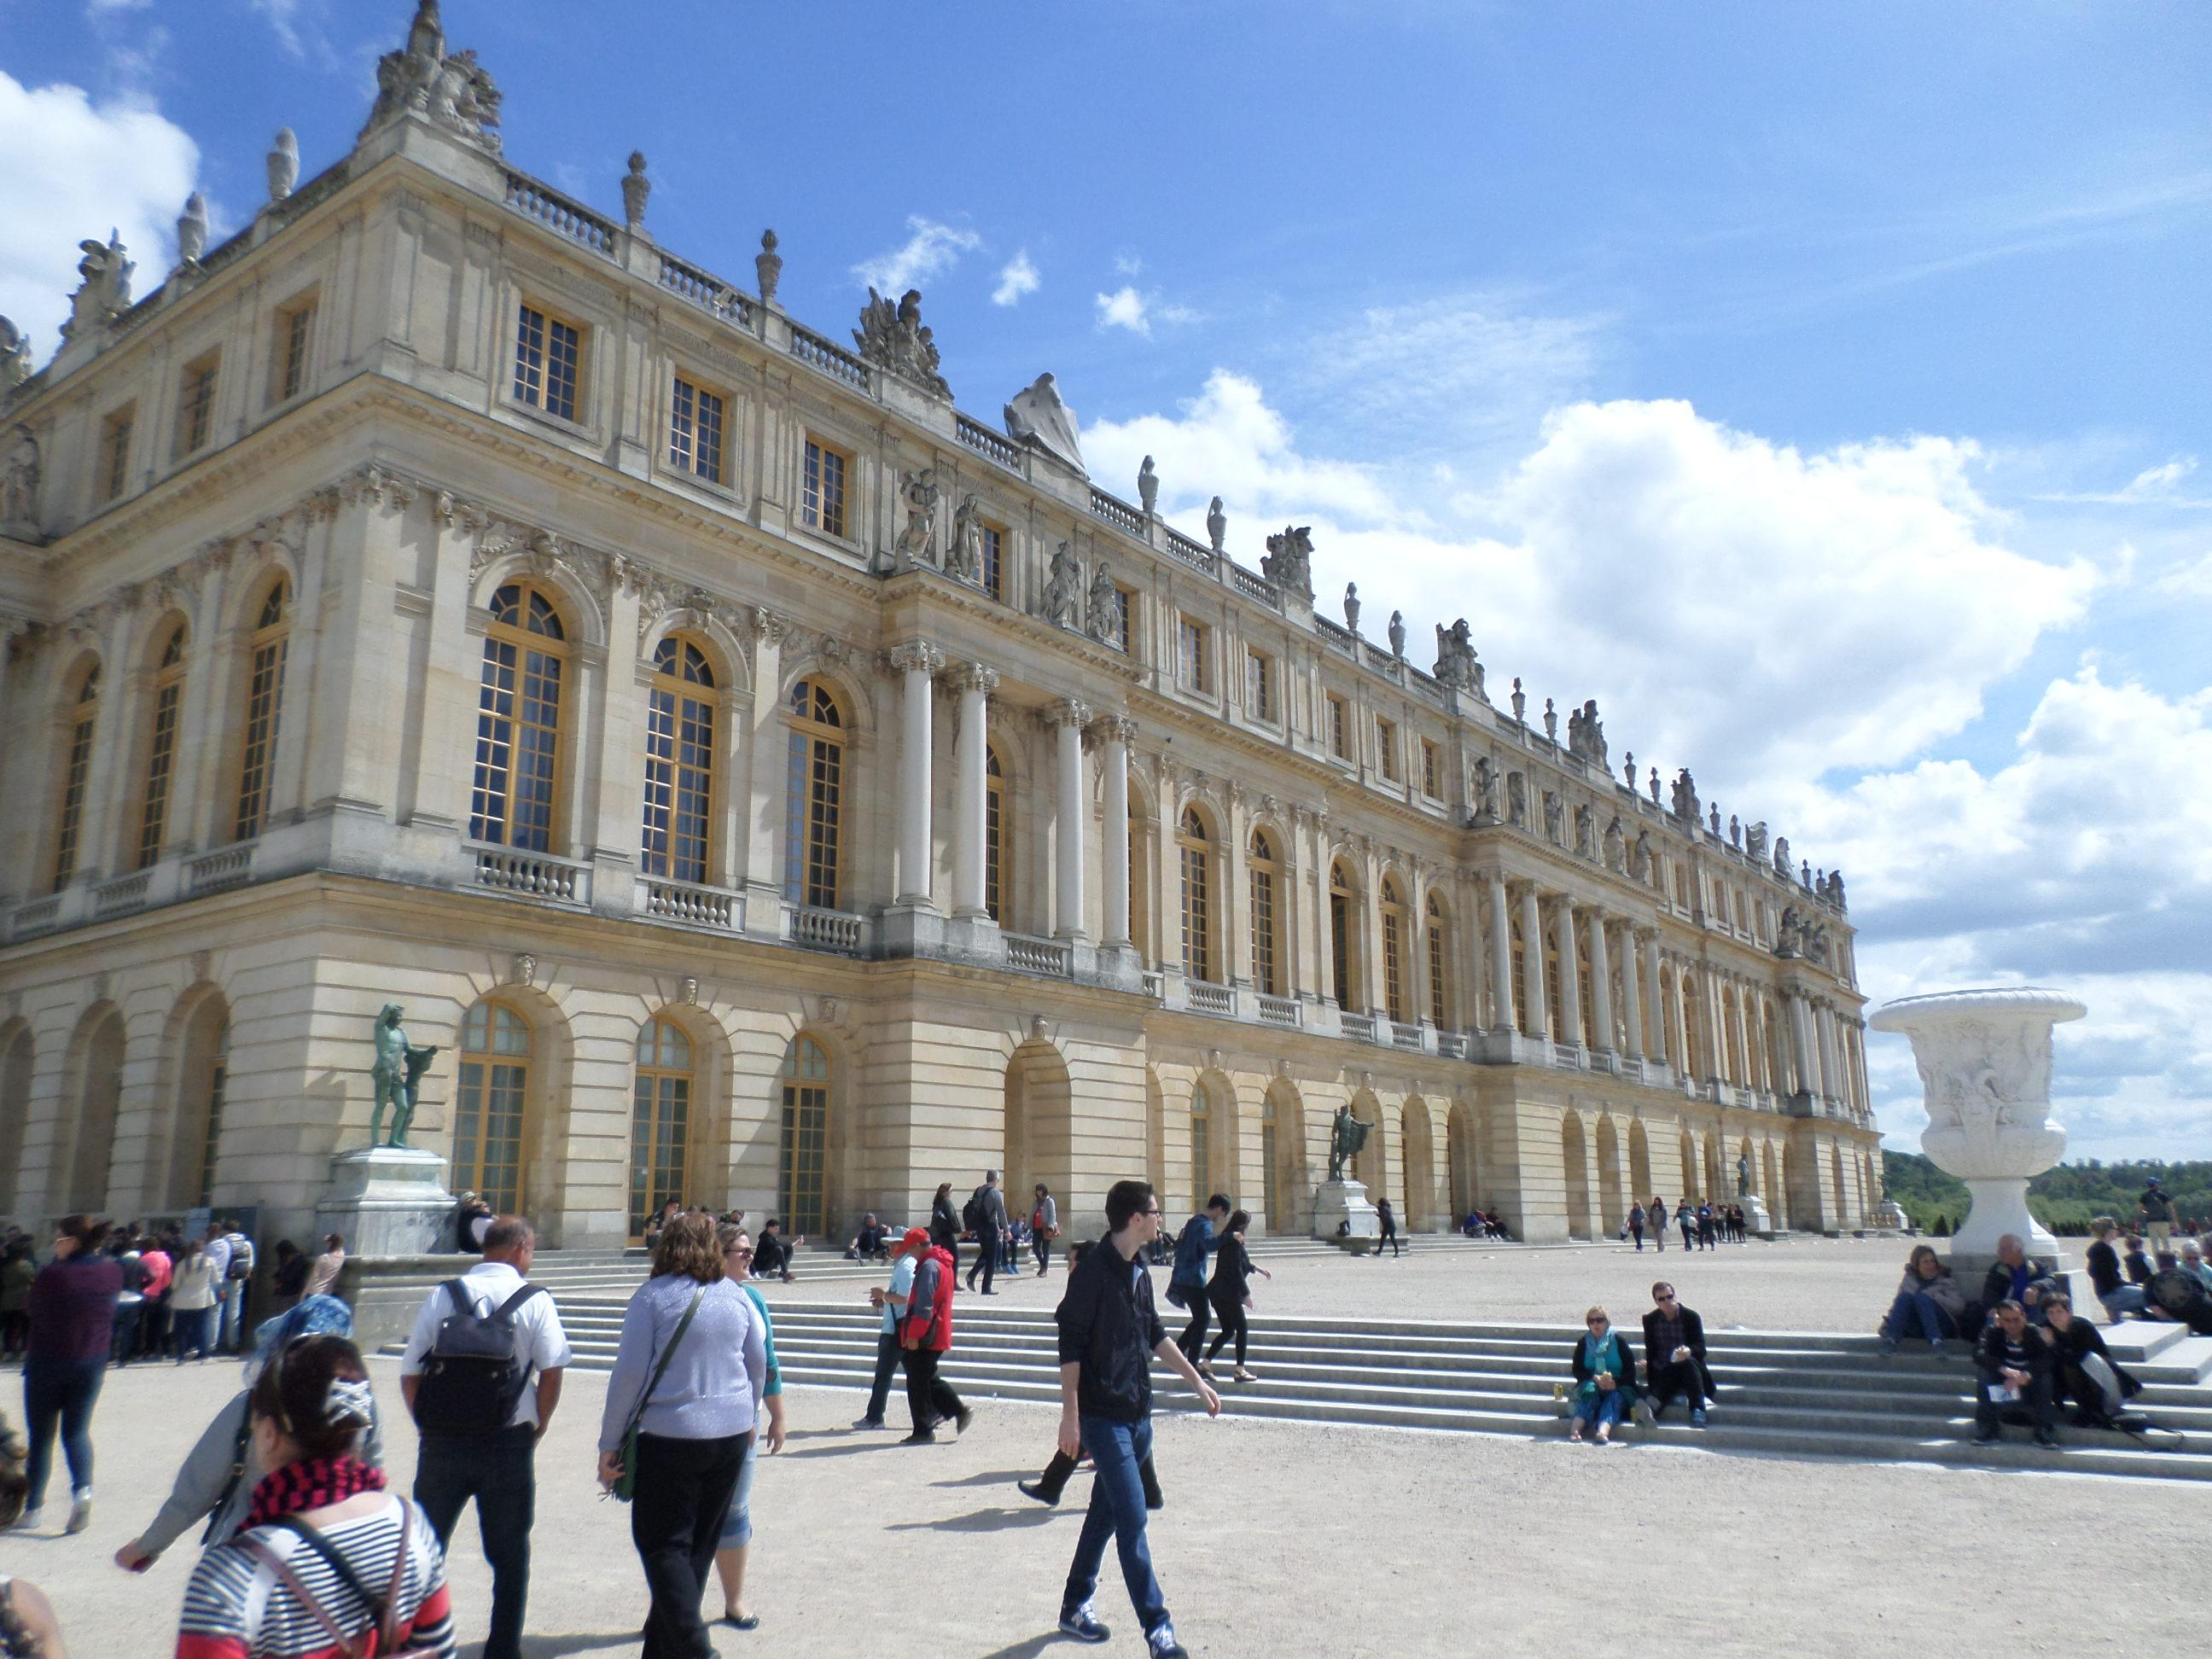 Palace of Versailles France. Accessible from Paris with a train trip.